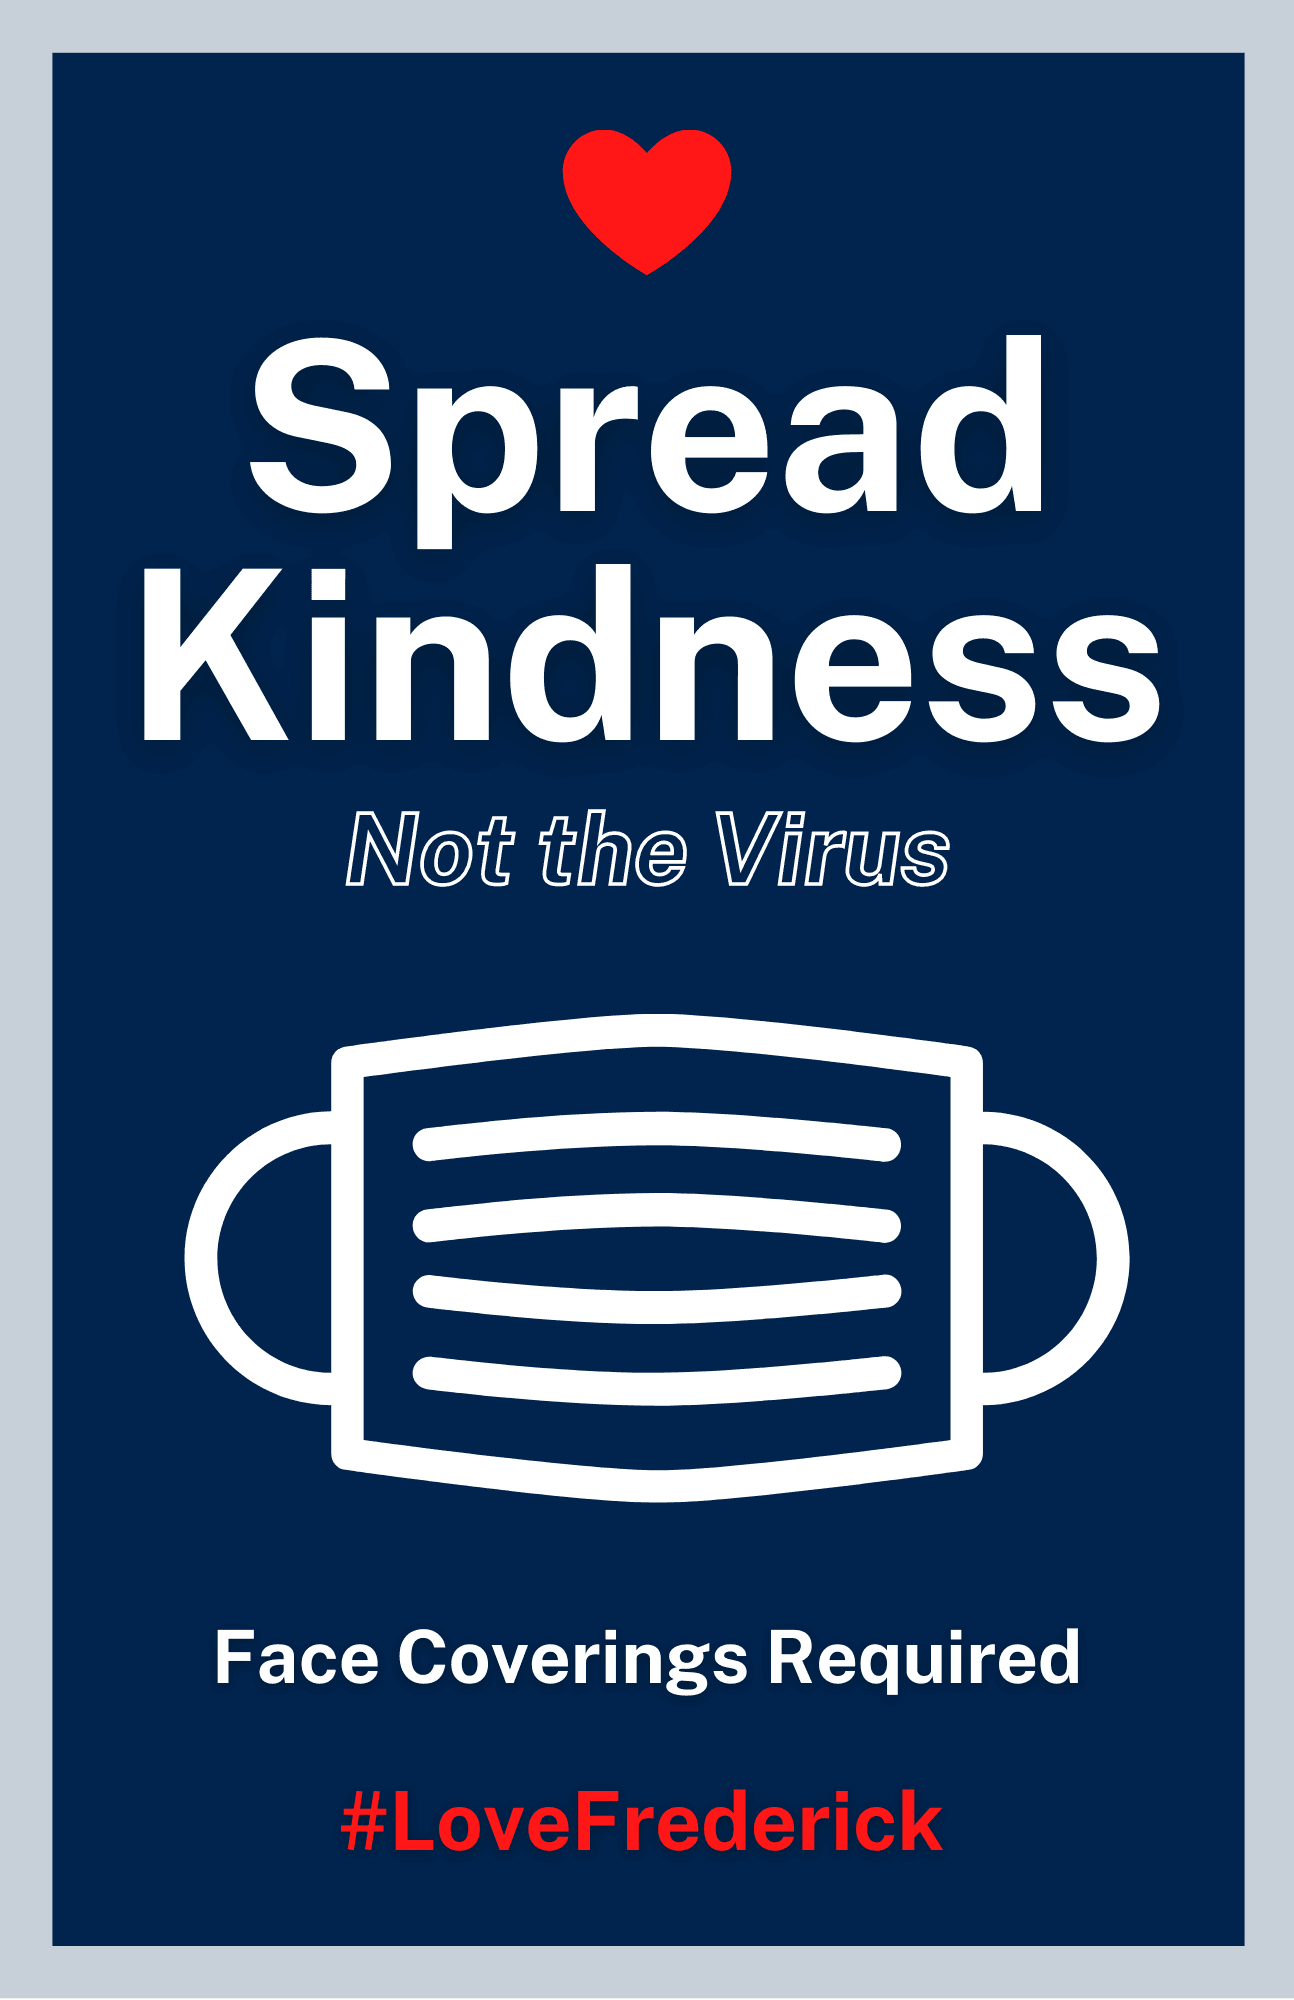 Spread Kindness poster - Face coverings required Opens in new window